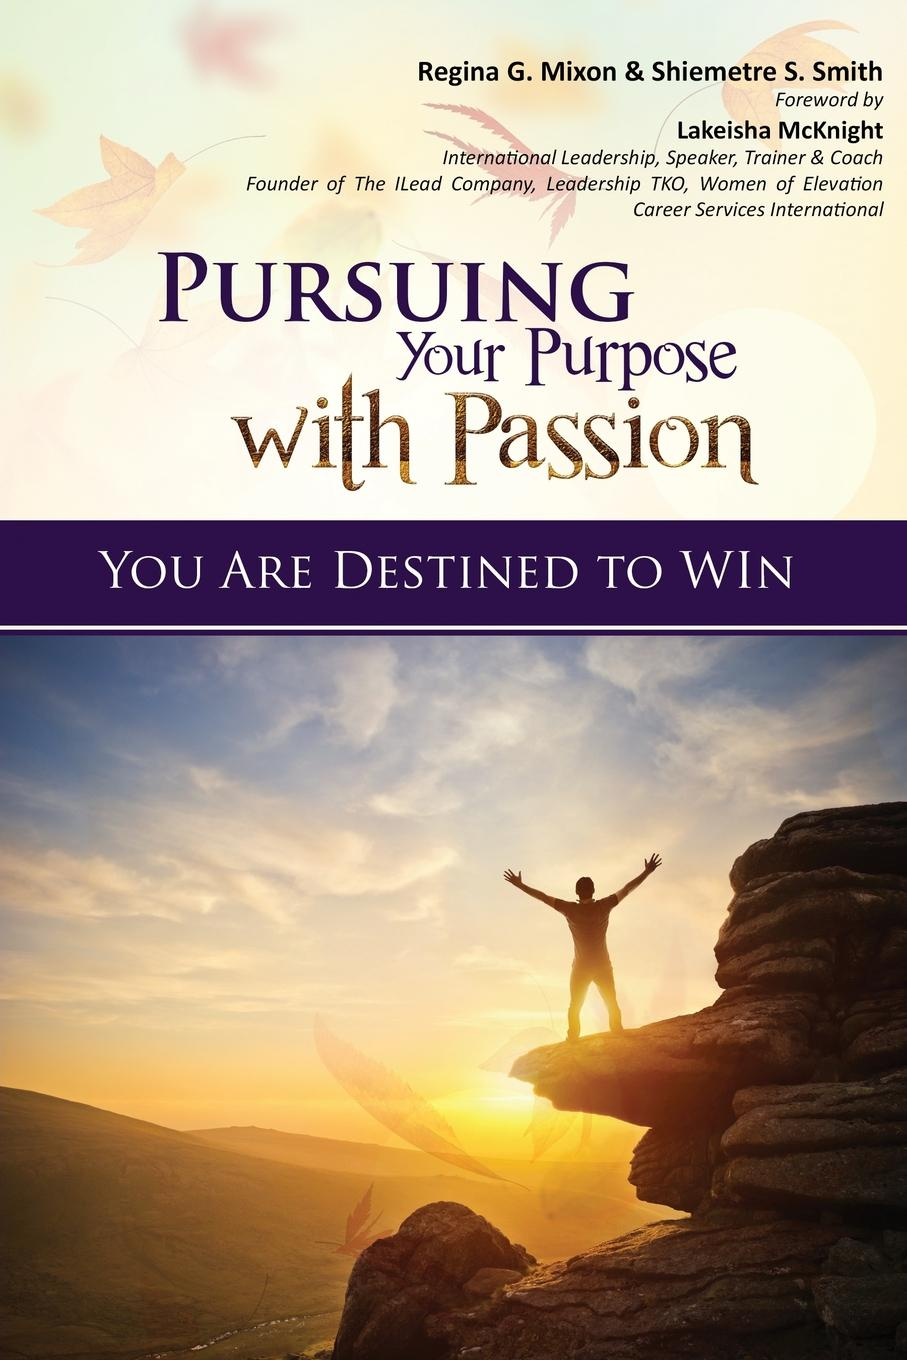 Regina Mixon. Pursuing Your Purpose With Passion. YOU ARE DESTINED TO WIN.